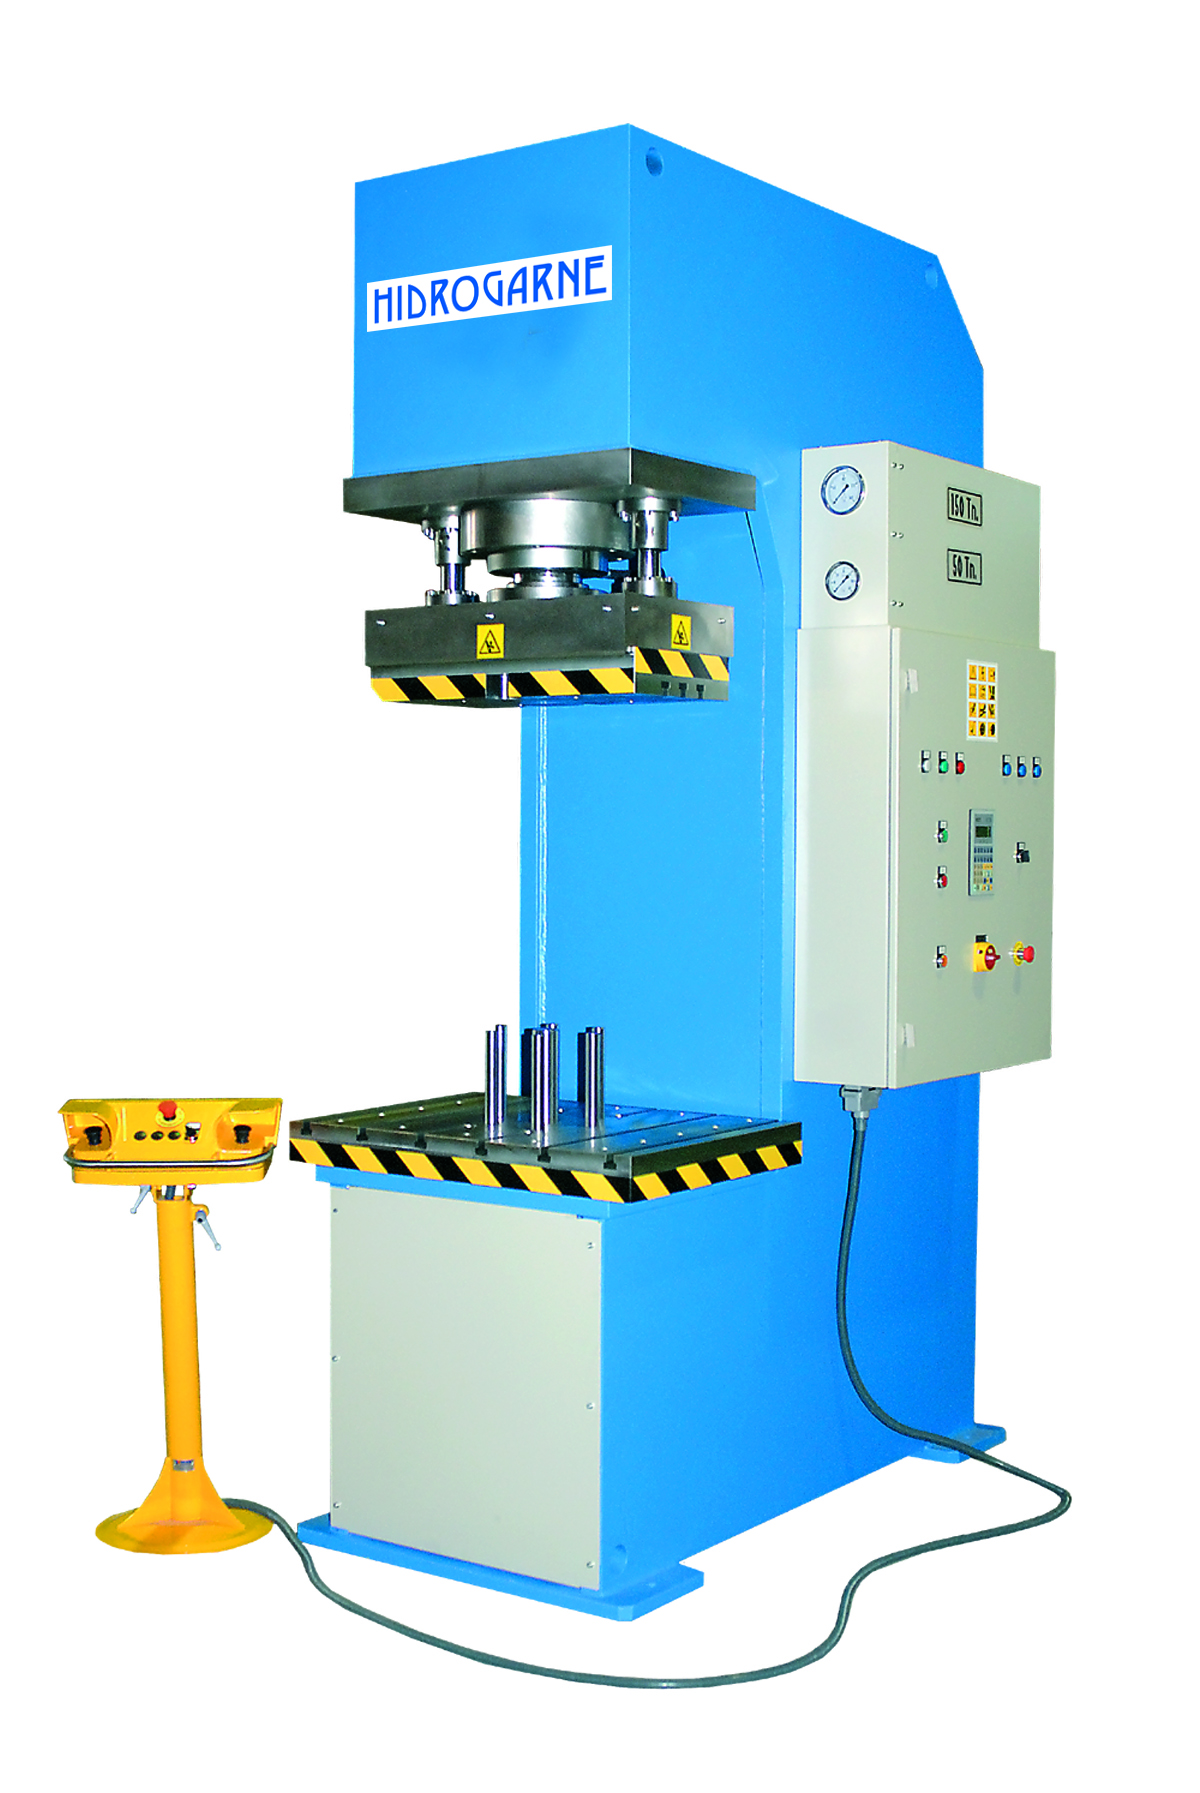 C-frame motorized hydraulic presses: CM series CM-150 E